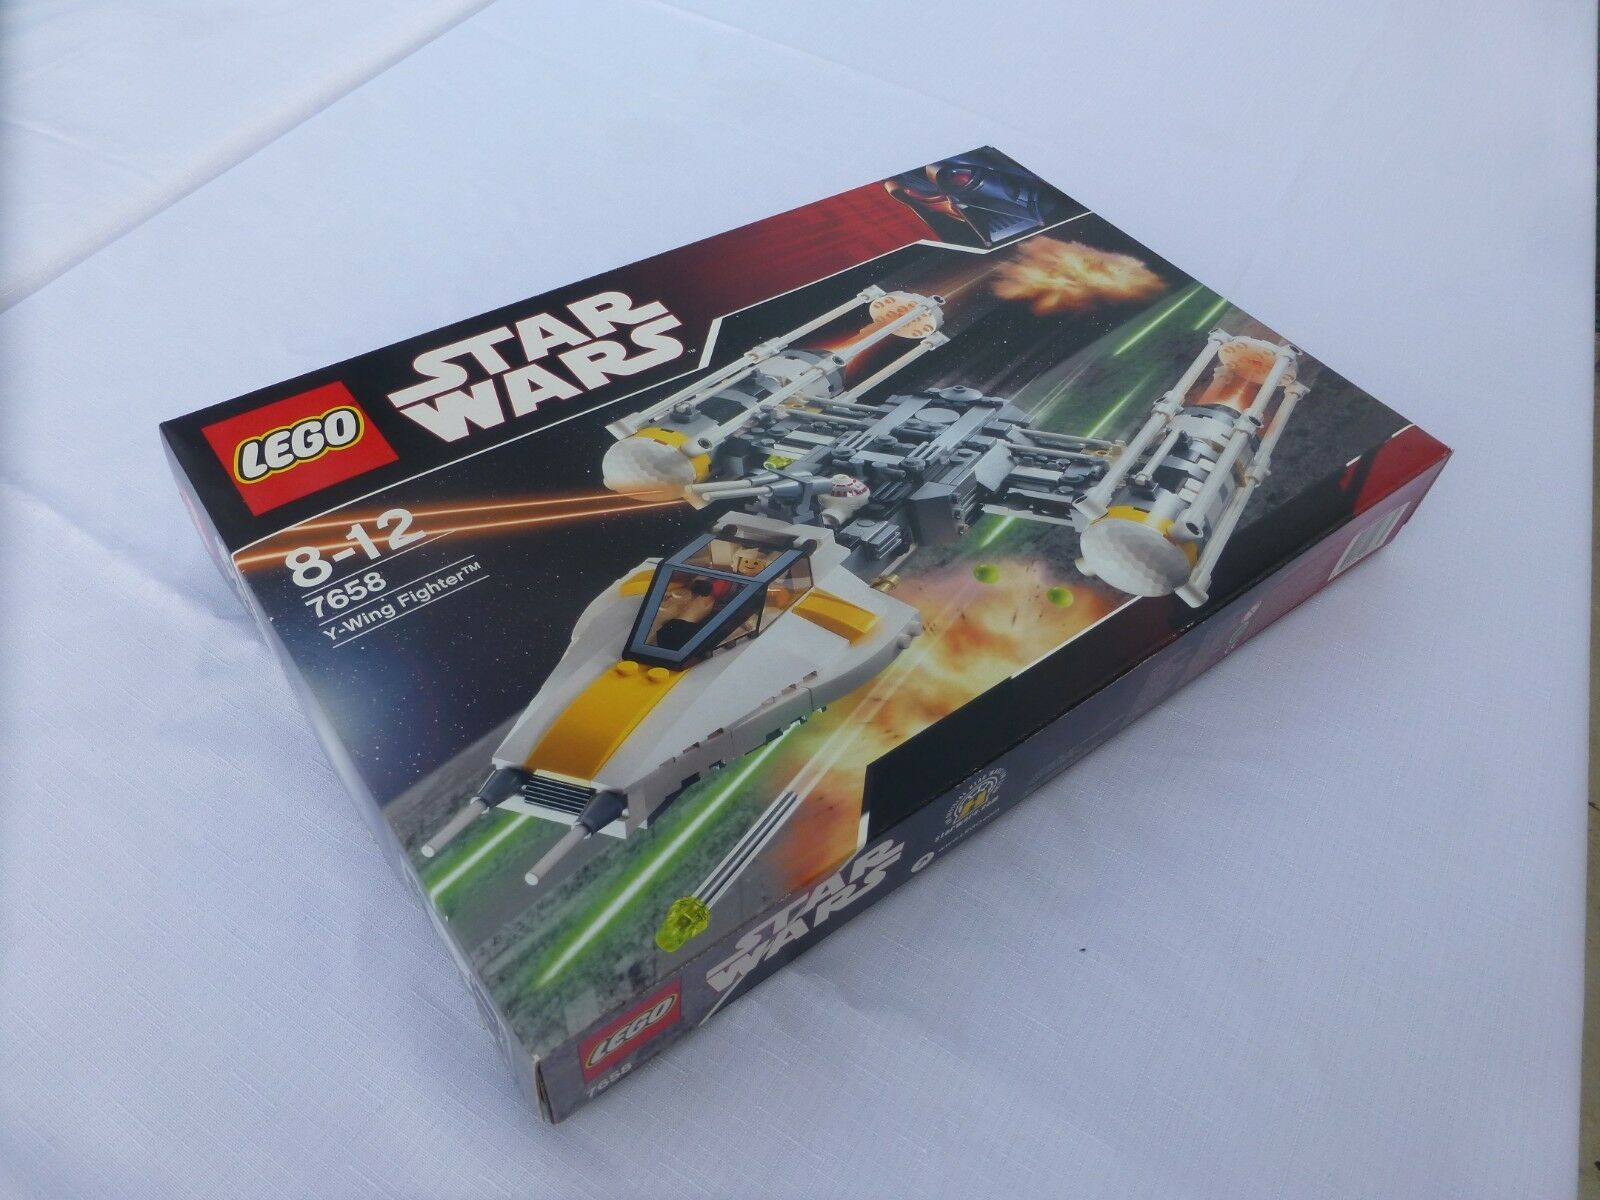 LEGO Star Wars 7658 Y-Wing Fighter [BRAND NEW] Sealed In Box